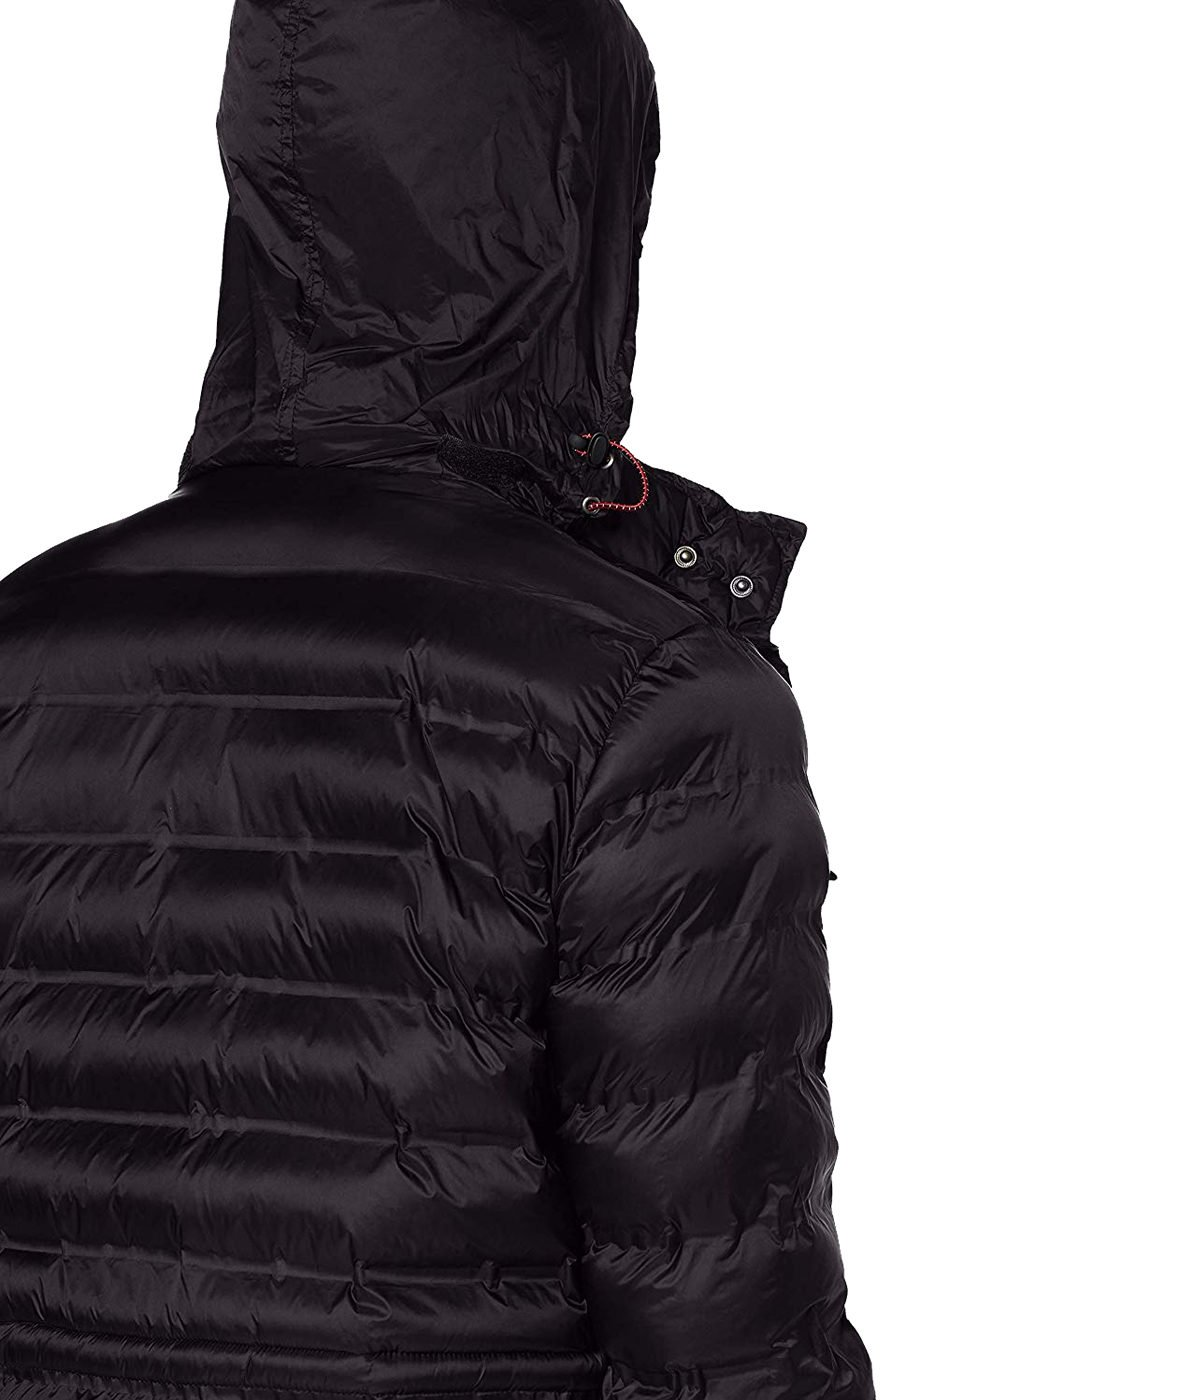 reputable site a1bc2 df777 GIACCONE UOMO INVICTA NERO JACKET LIGHT PIUMINO 4432356/U 1444